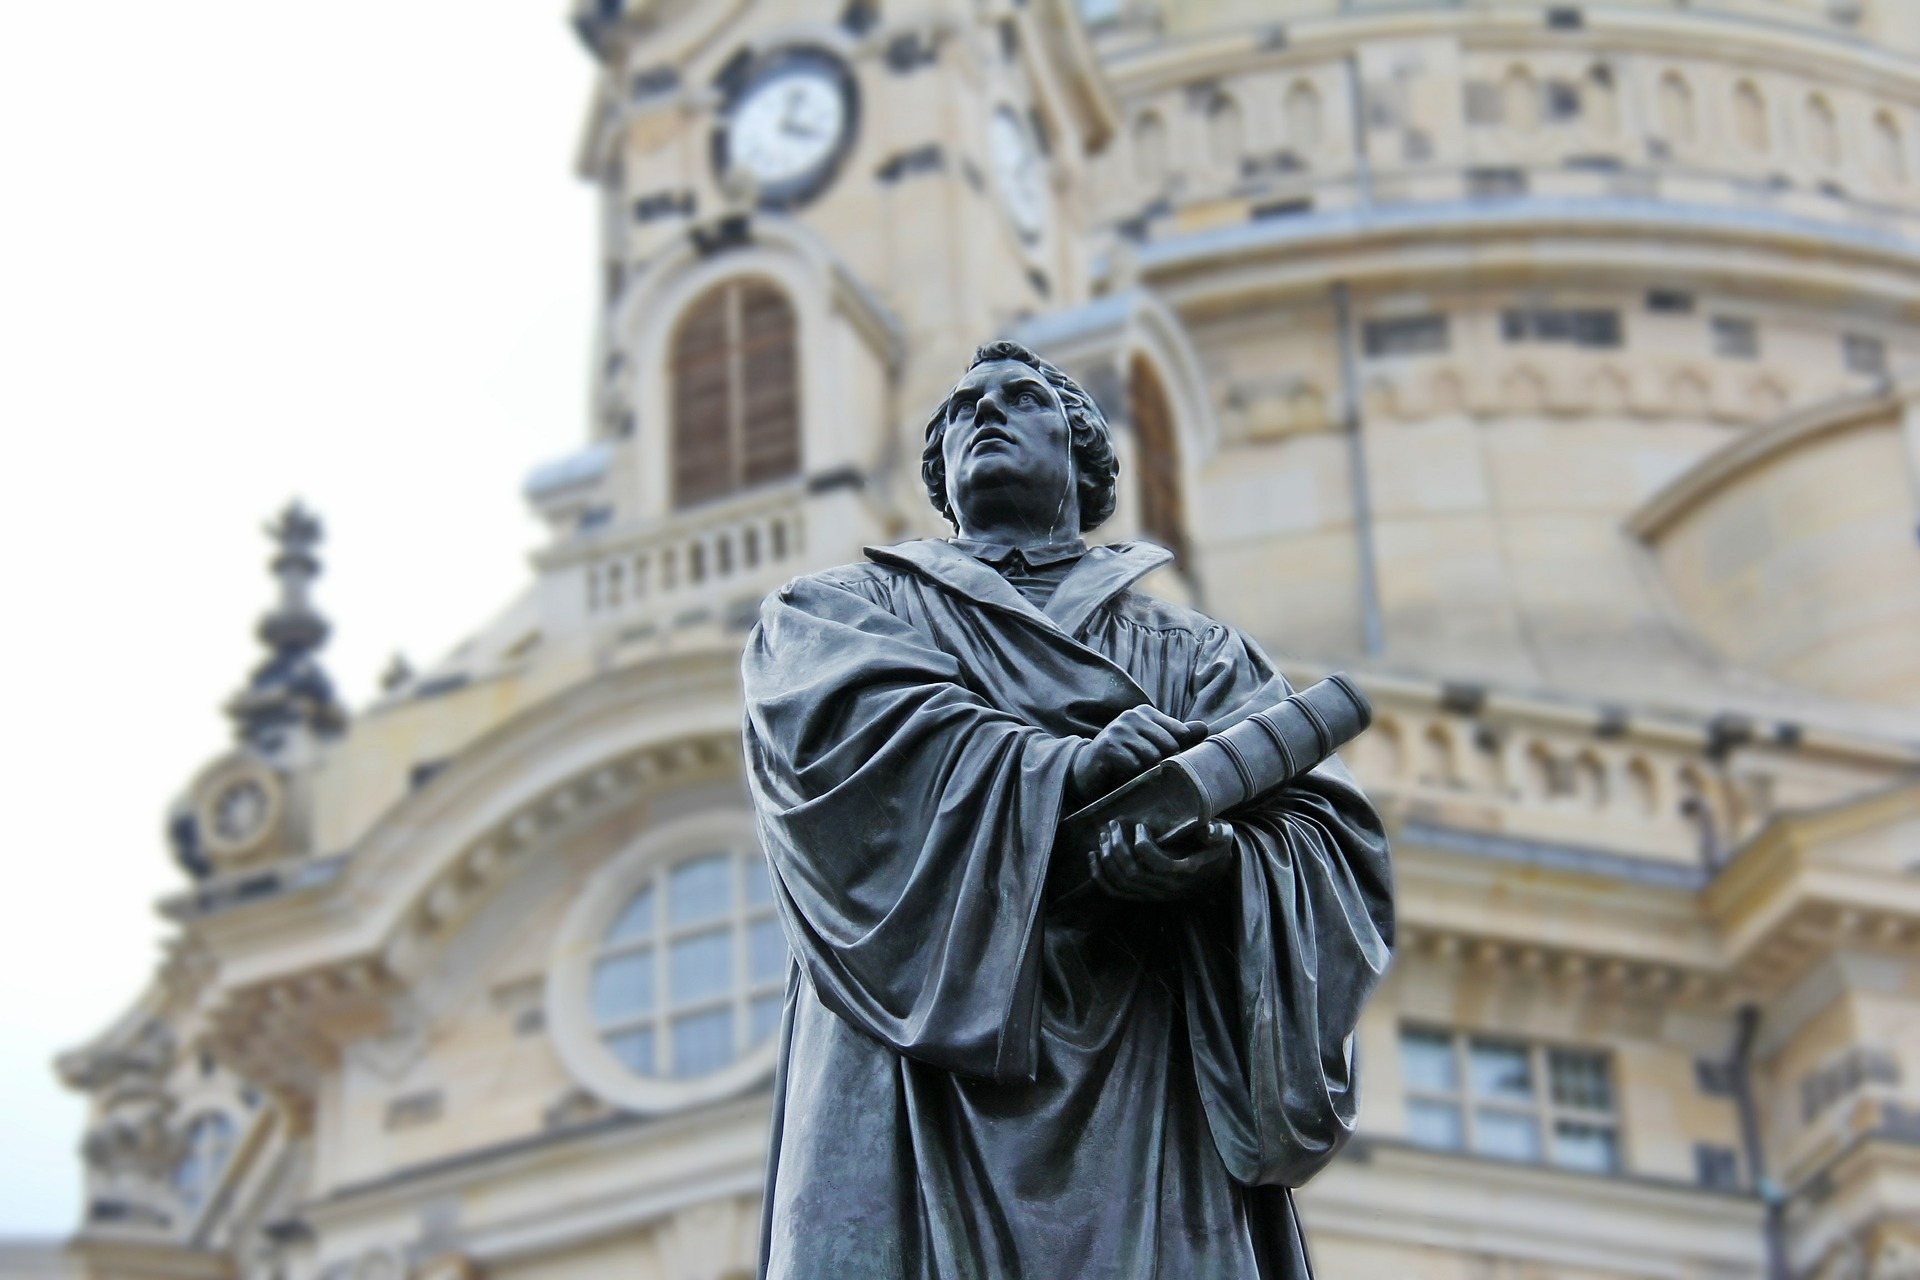 A statue of Martin Luther in front of a church in Germany